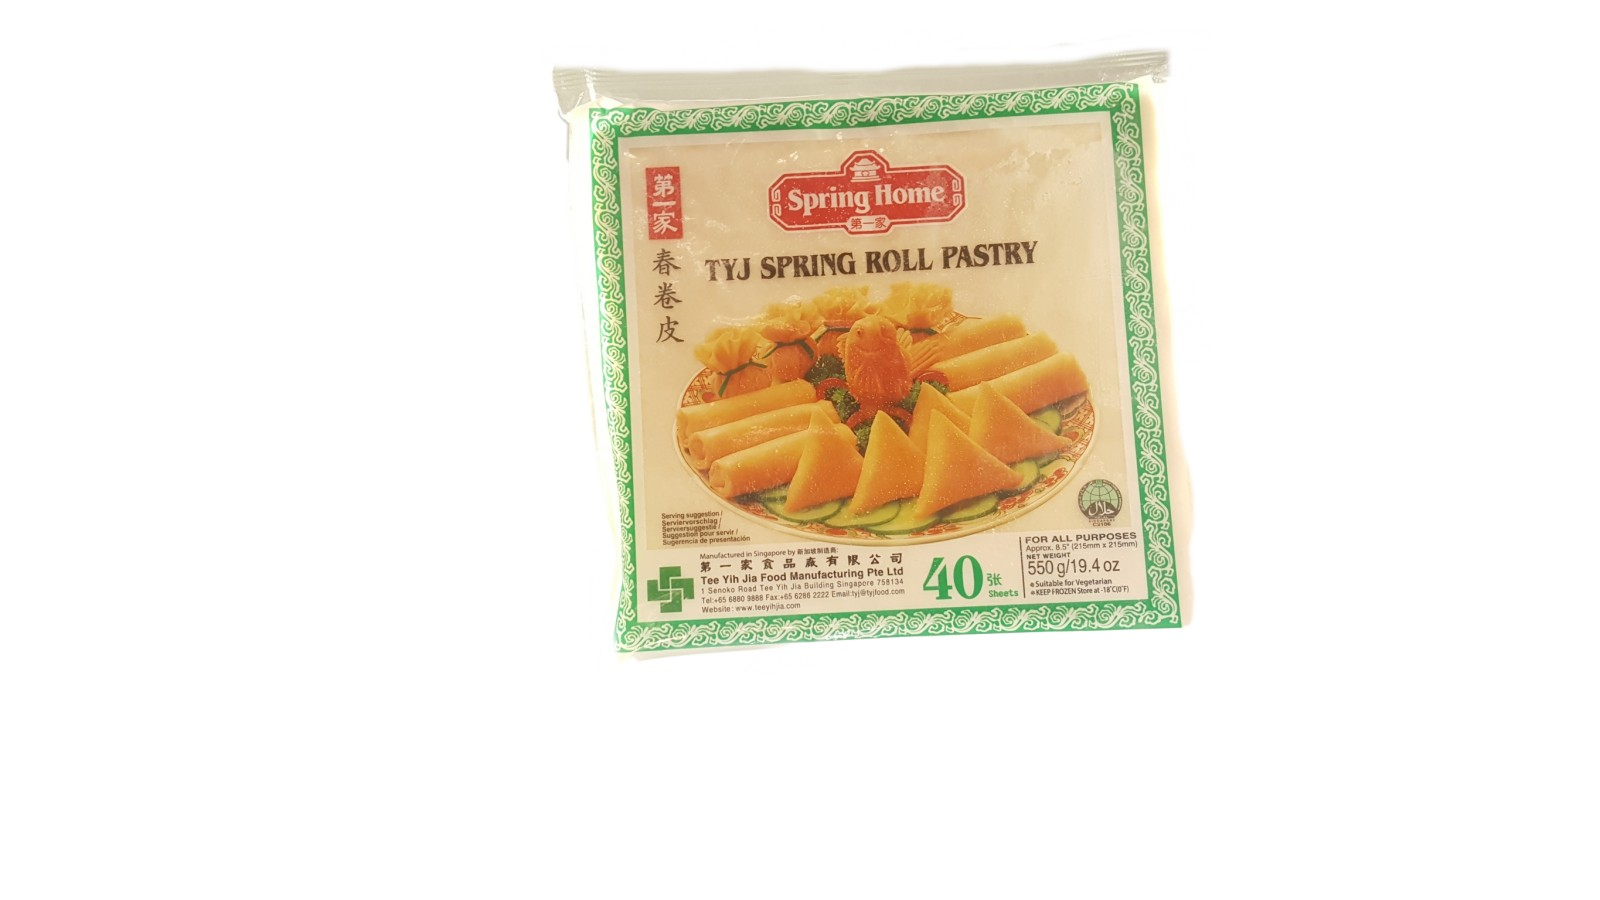 spring home tyj spring roll pastry 550g 40 sheets  sing kee